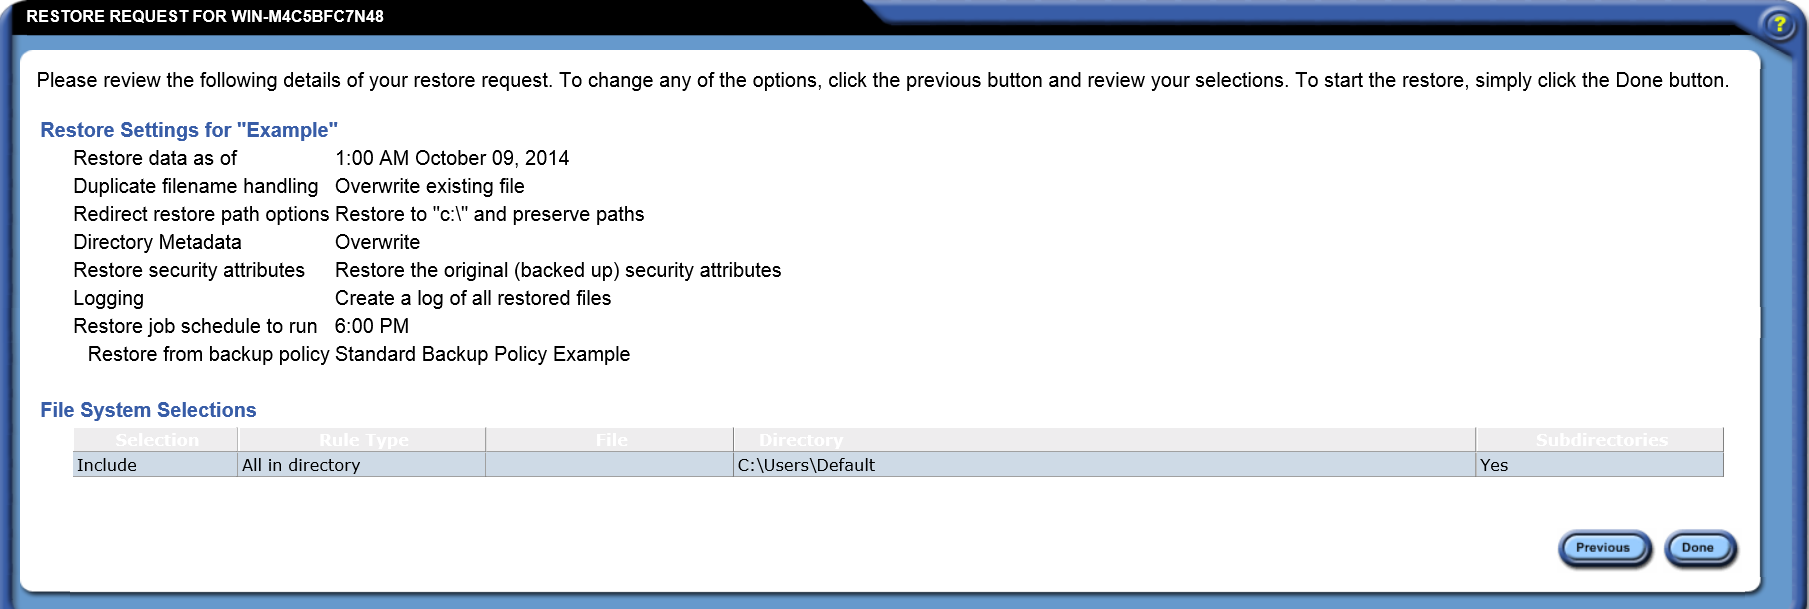 Creating A Restore File Data Security Policy Example Review The Information